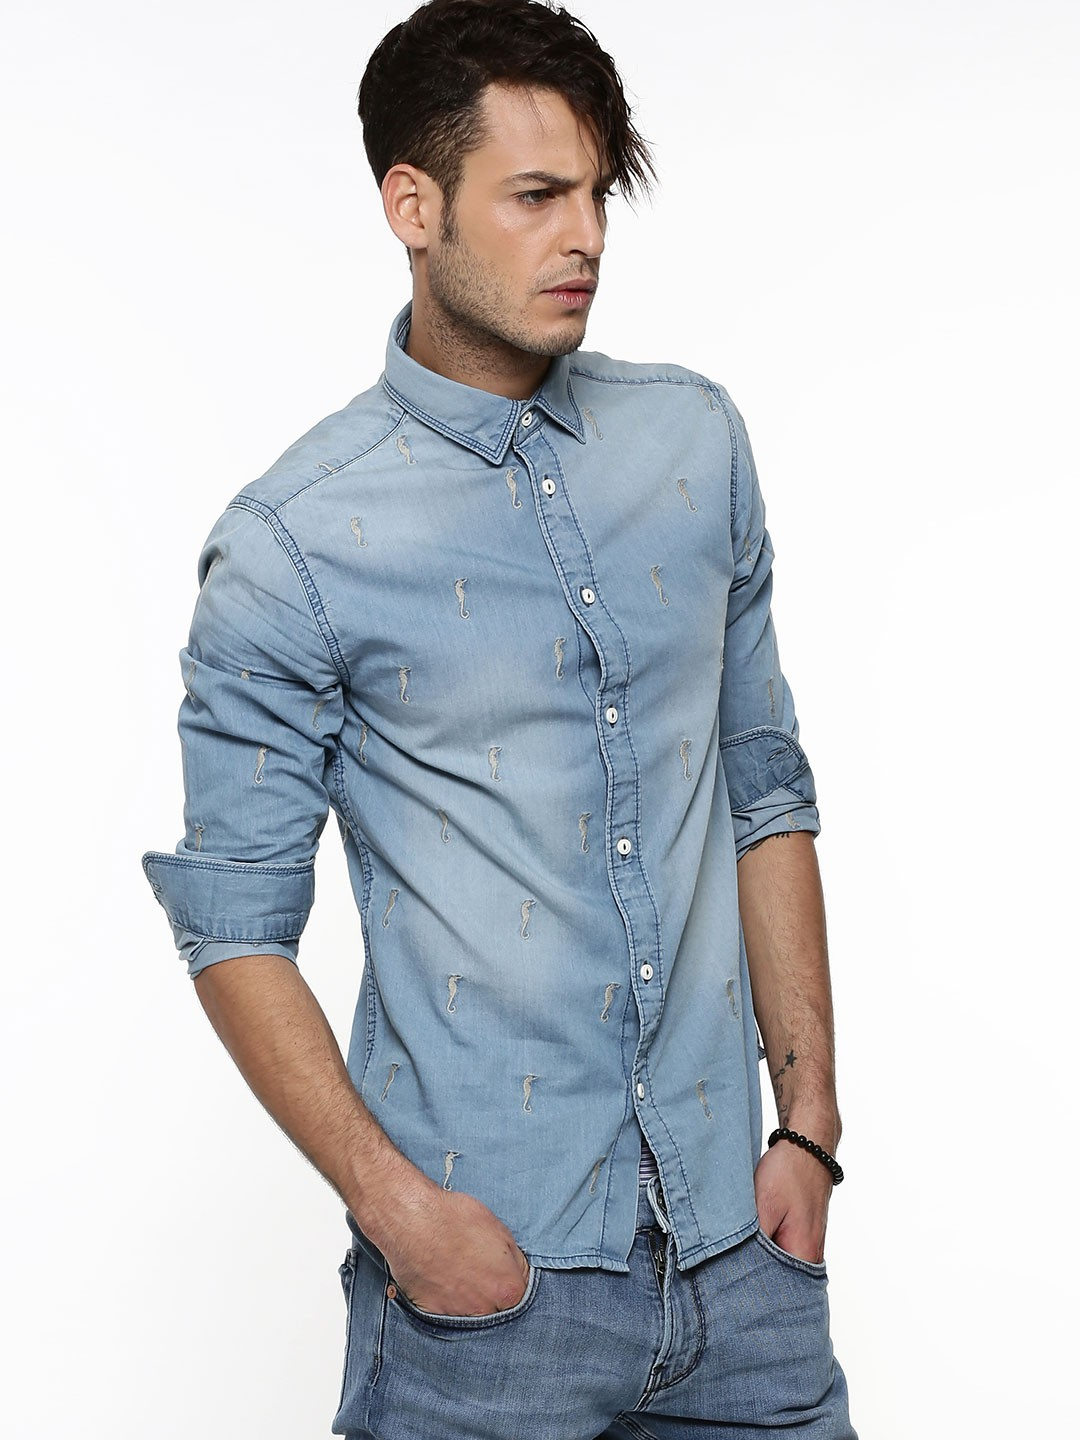 7781e5cfab5 Blue Denim Shirts India – EDGE Engineering and Consulting Limited